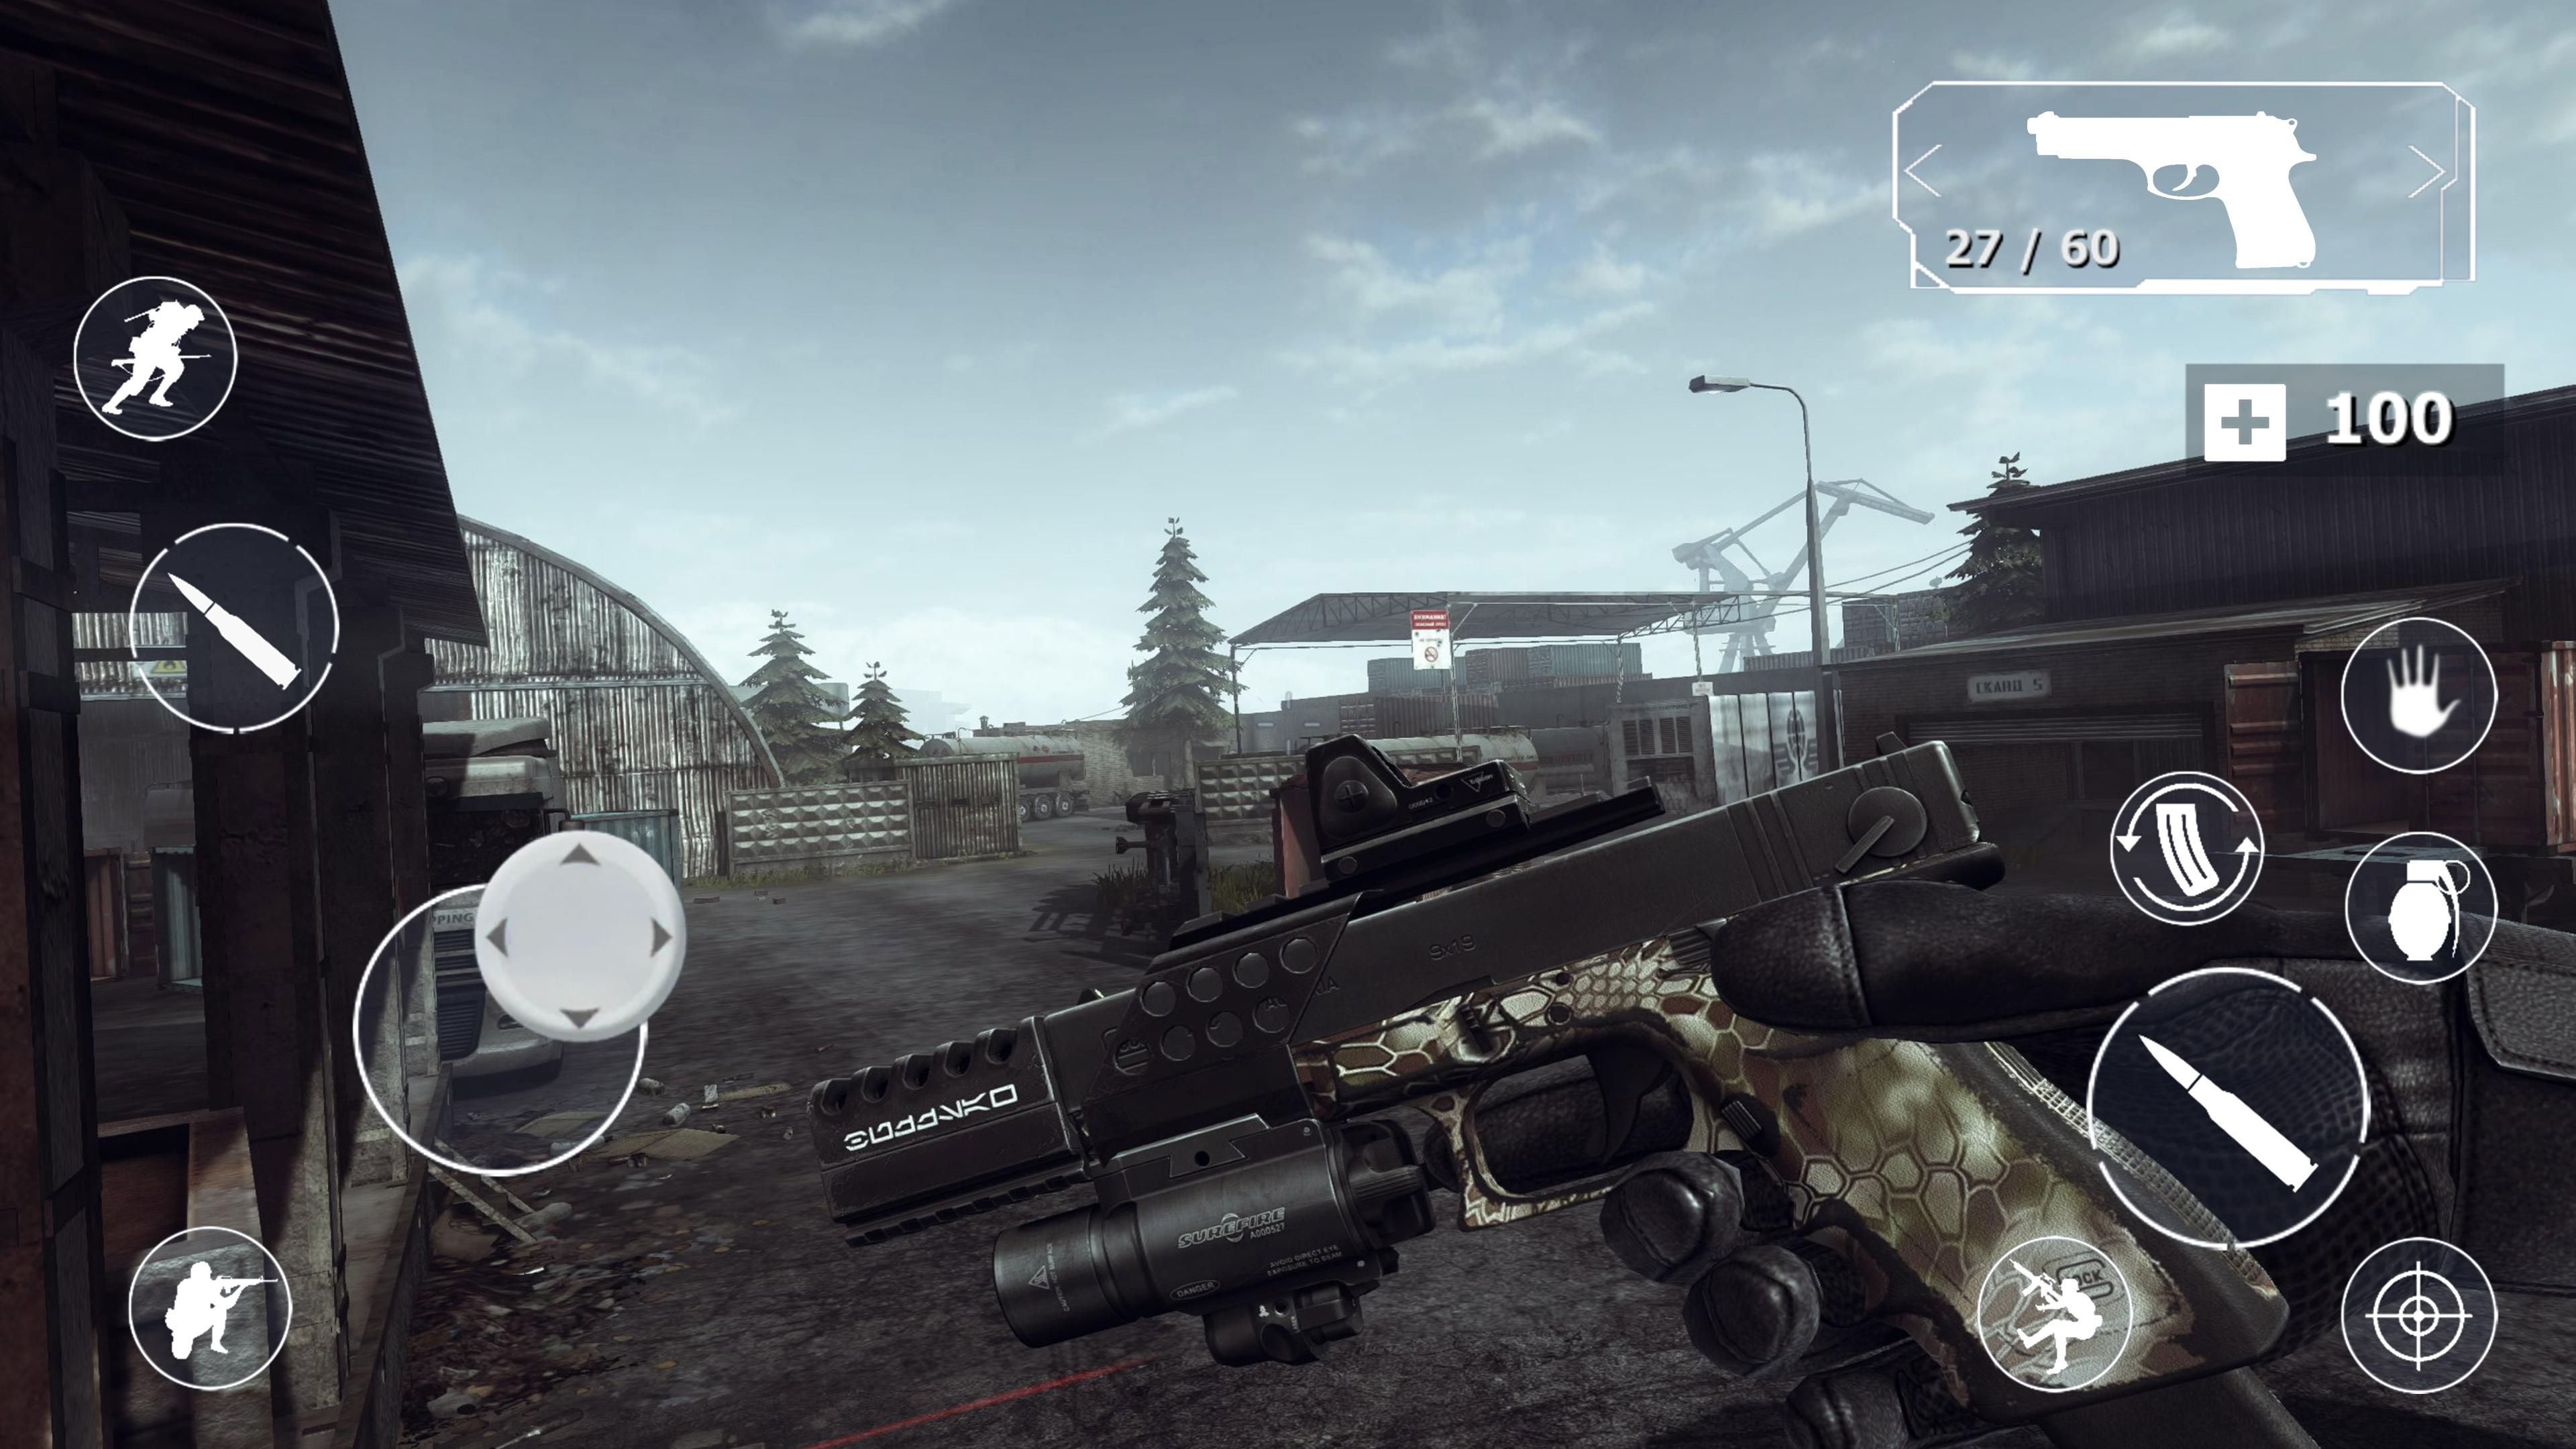 Battle Of Bullet for Android - APK Download